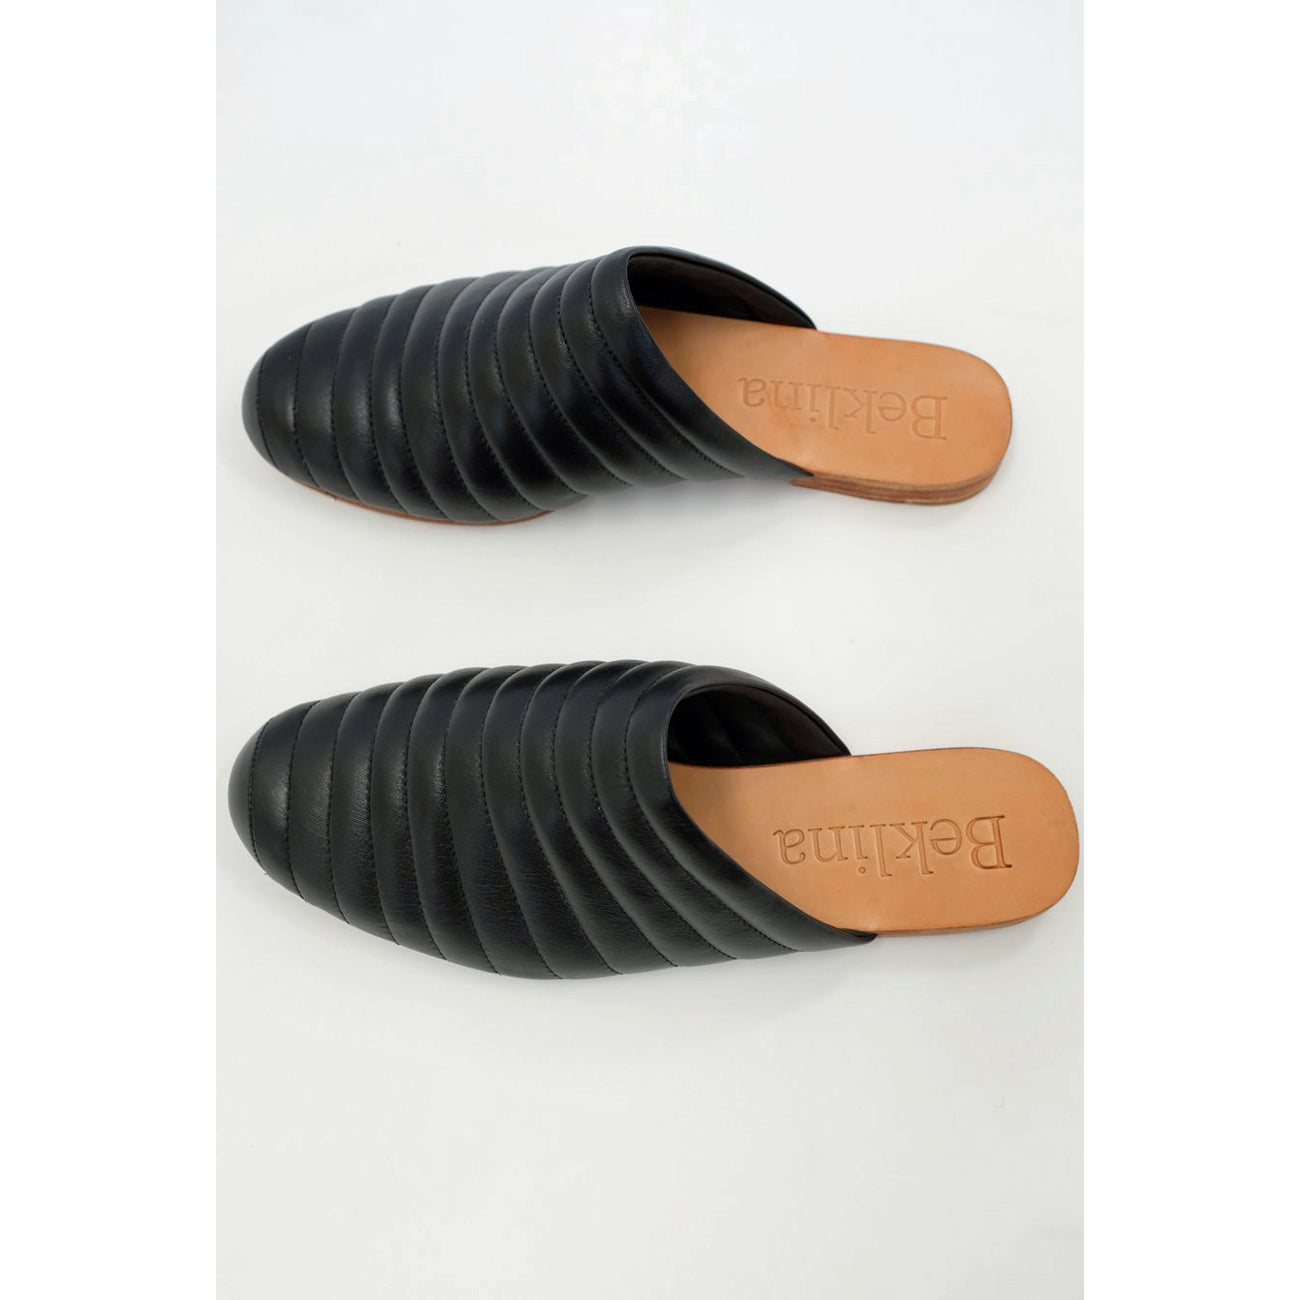 ribbed flats in black